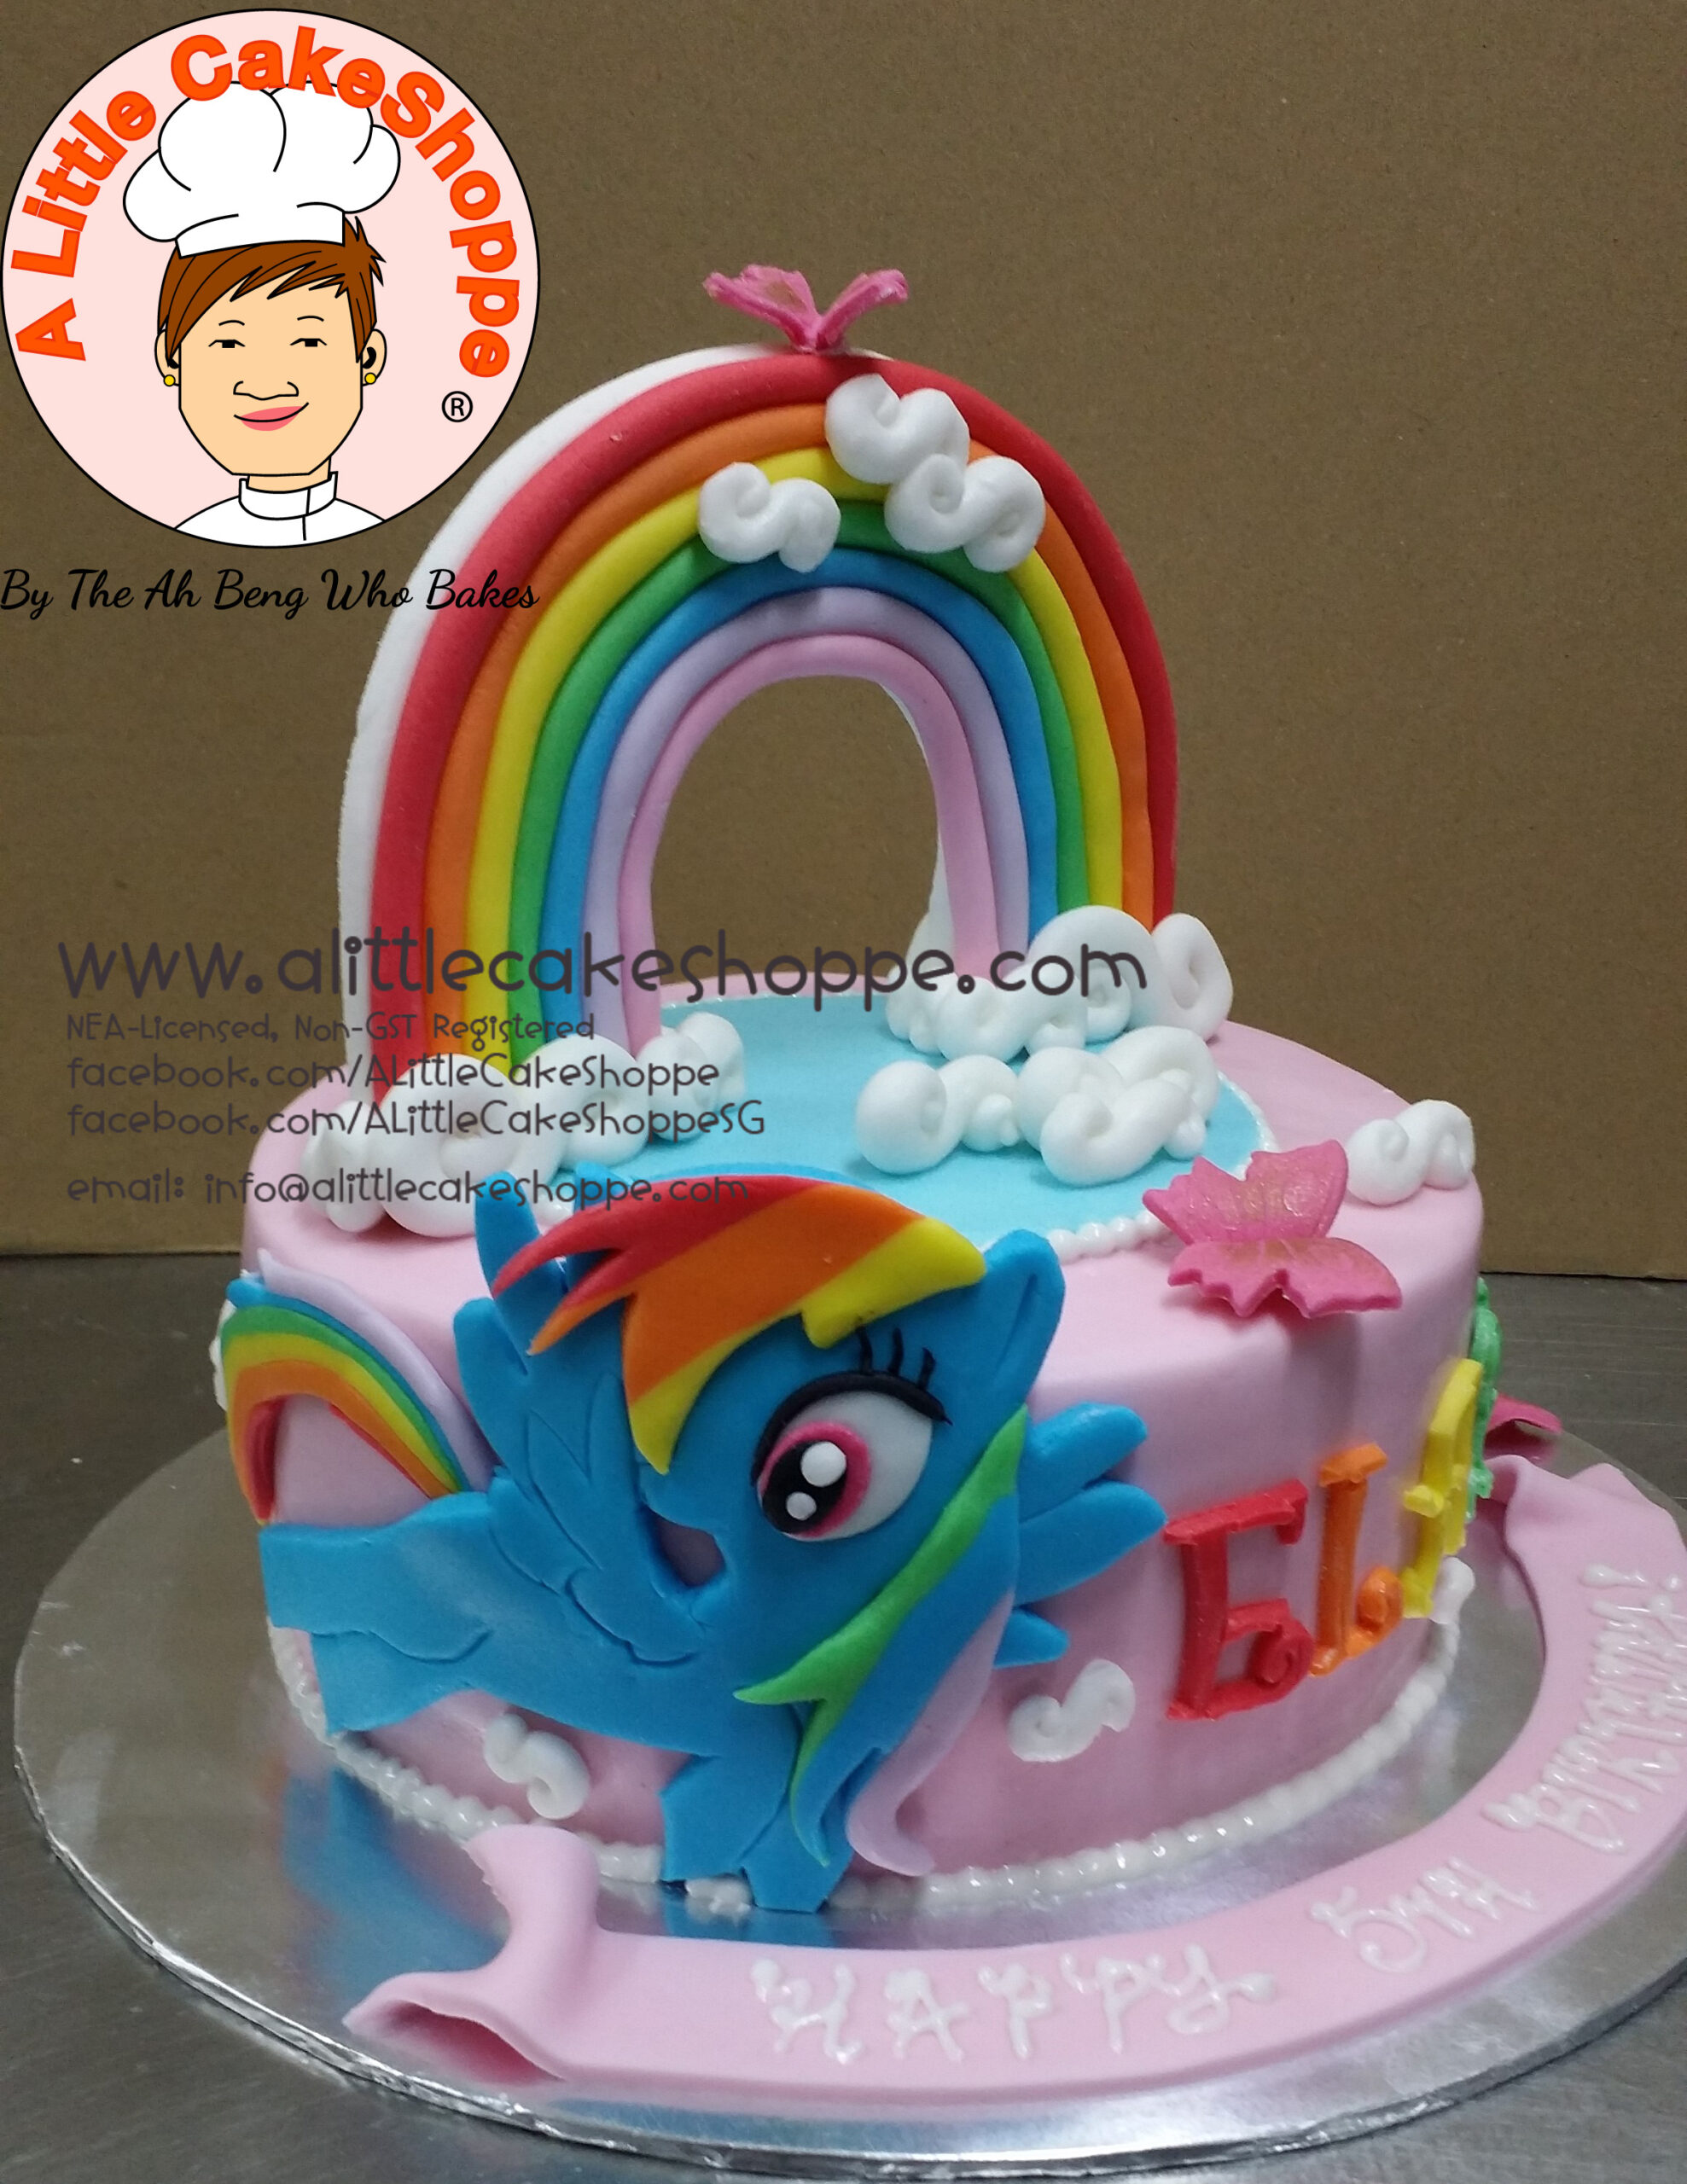 Best Customised Cake Shop Singapore custom cake 2D 3D birthday cake cupcakes desserts wedding corporate events anniversary 1st birthday 21st birthday fondant fresh cream buttercream cakes alittlecakeshoppe a little cake shoppe compliments review singapore bakers SG cake shop cakeshop ah beng who bakes my little pony MLP